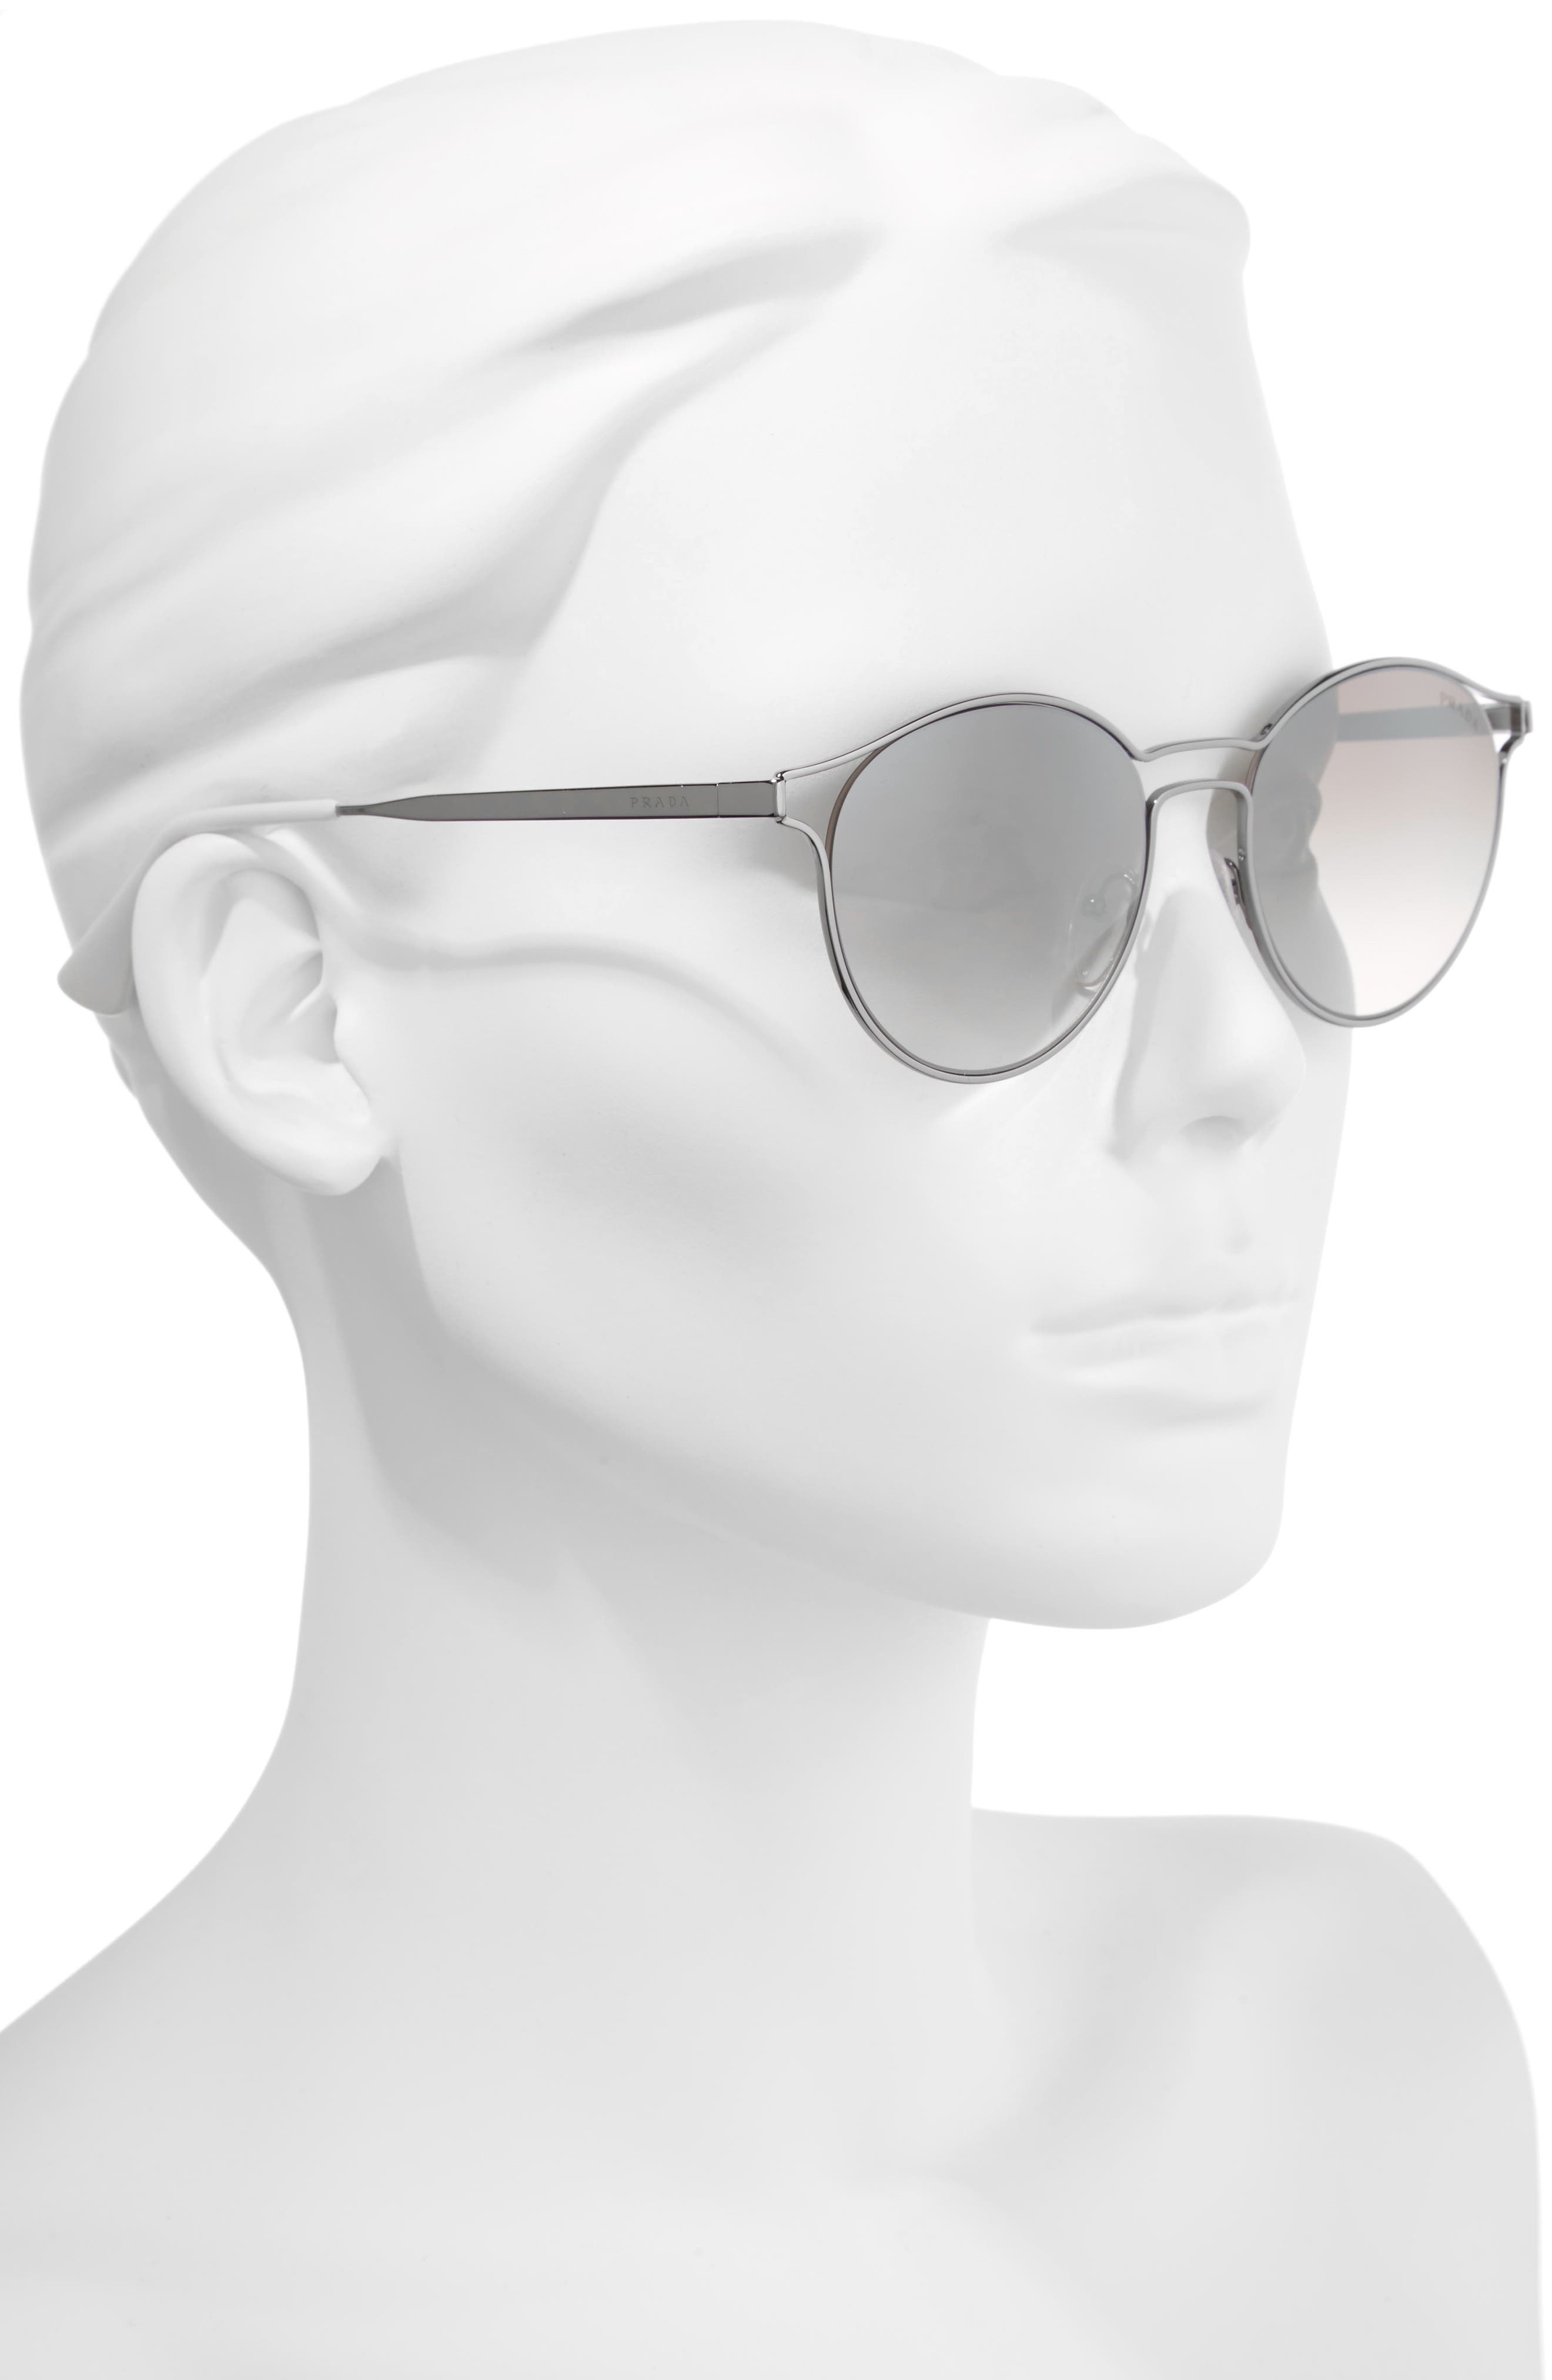 53mm Round Mirrored Sunglasses,                             Alternate thumbnail 3, color,                             062